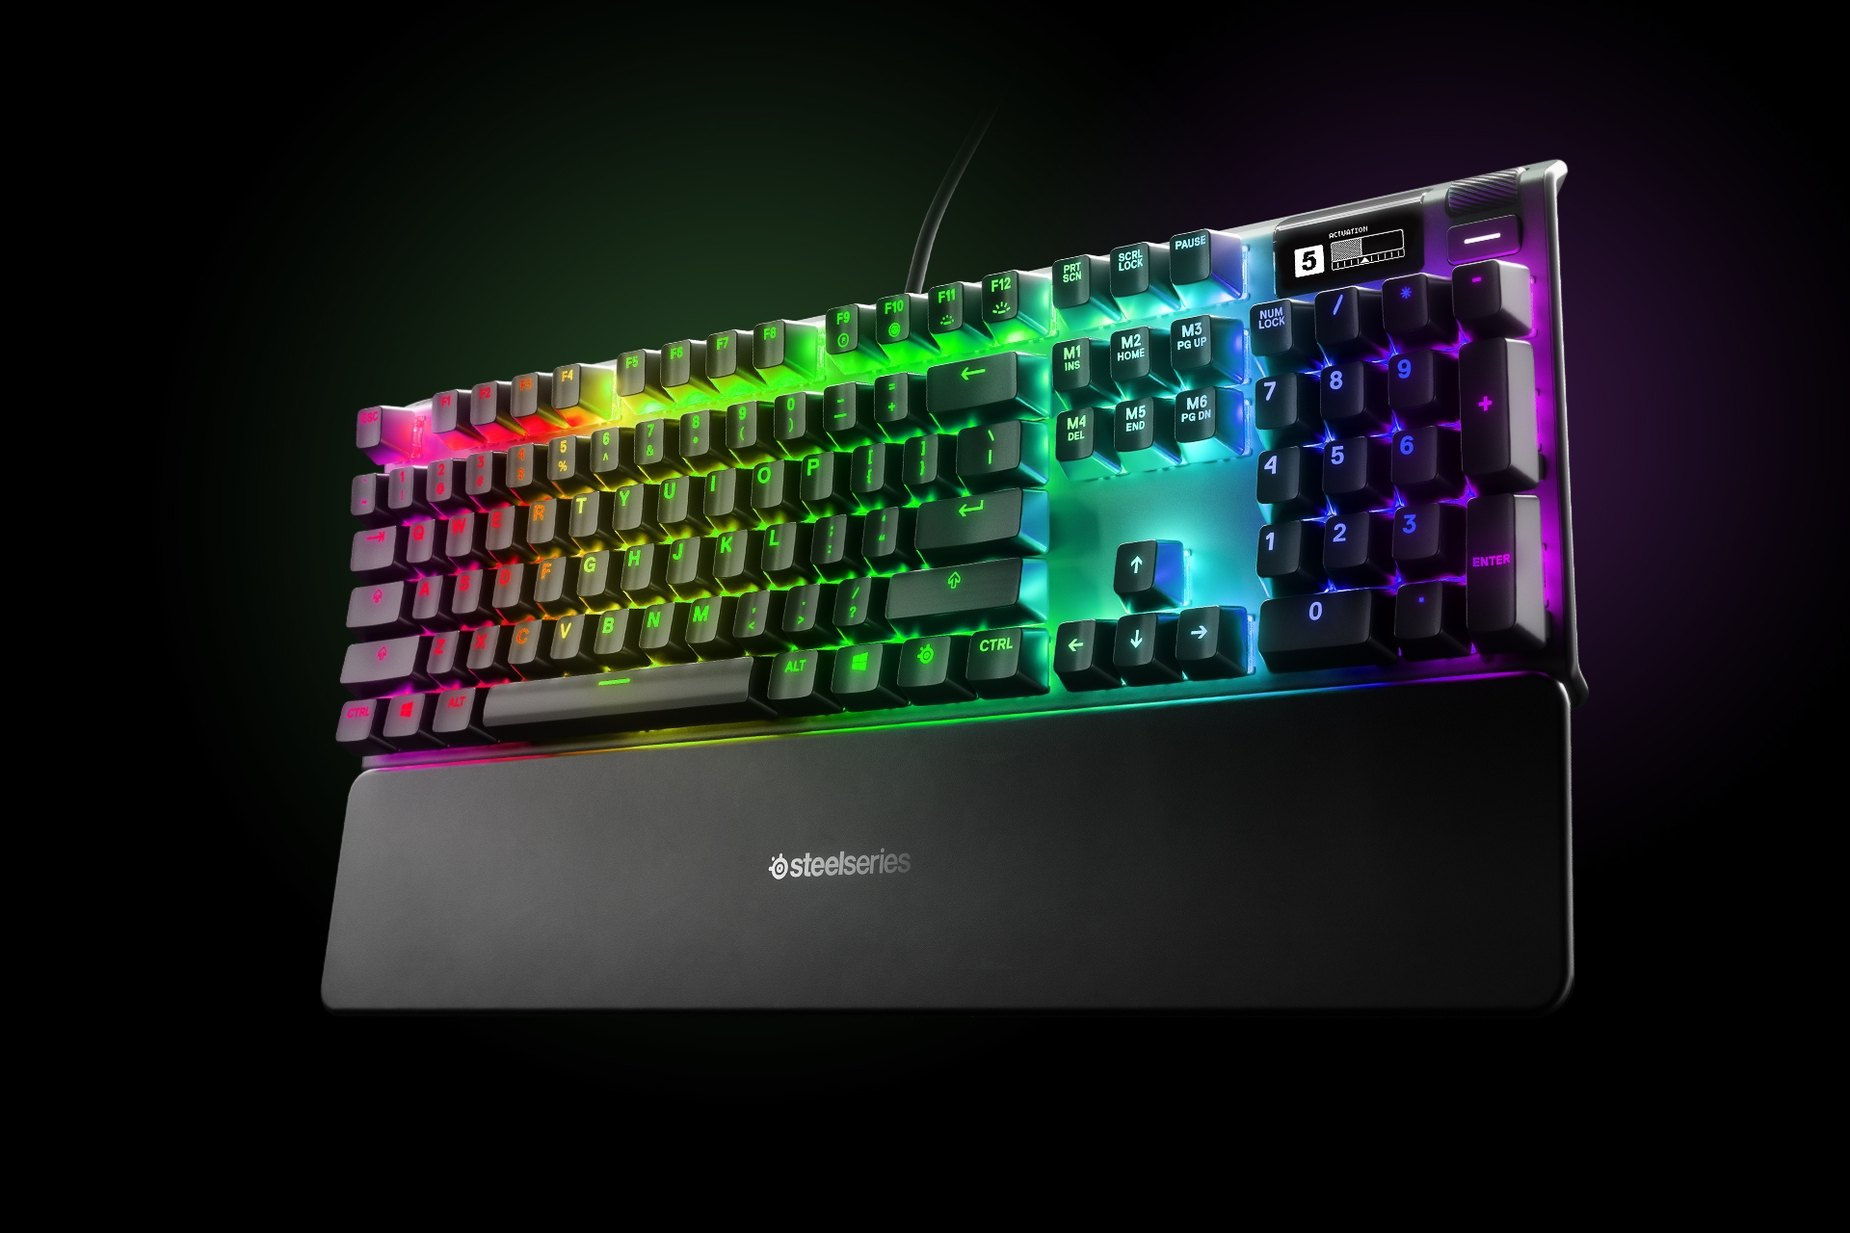 Nordic - Apex Pro gaming keyboard with the illumination lit up on dark background, also shows the OLED screen and controls used to change settings, switch actuation, and adjust audio